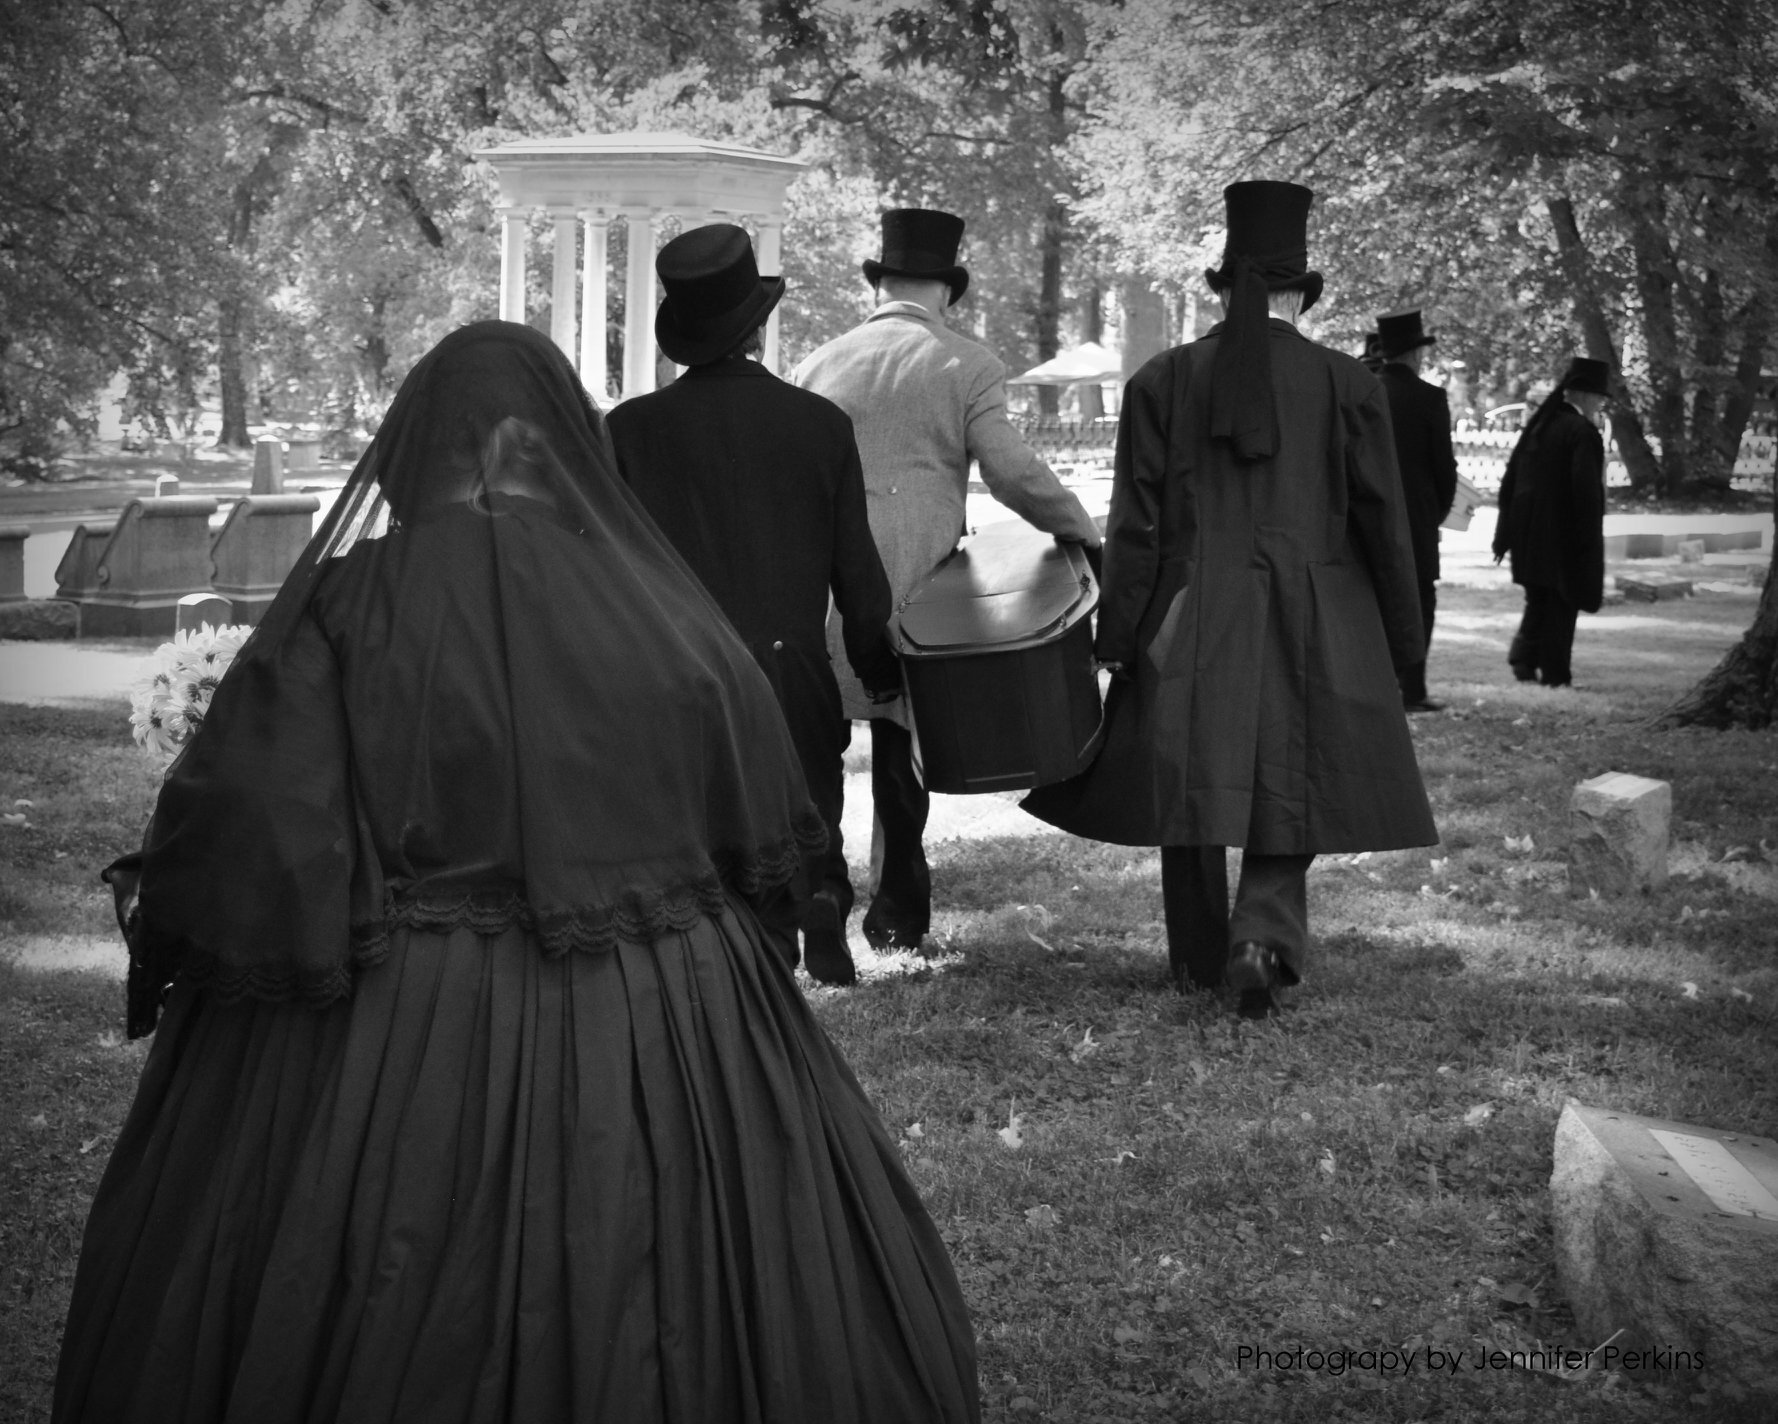 Funeral procession from Consolations of Memory 2018 ~image courtesy of Jennifer Perkins